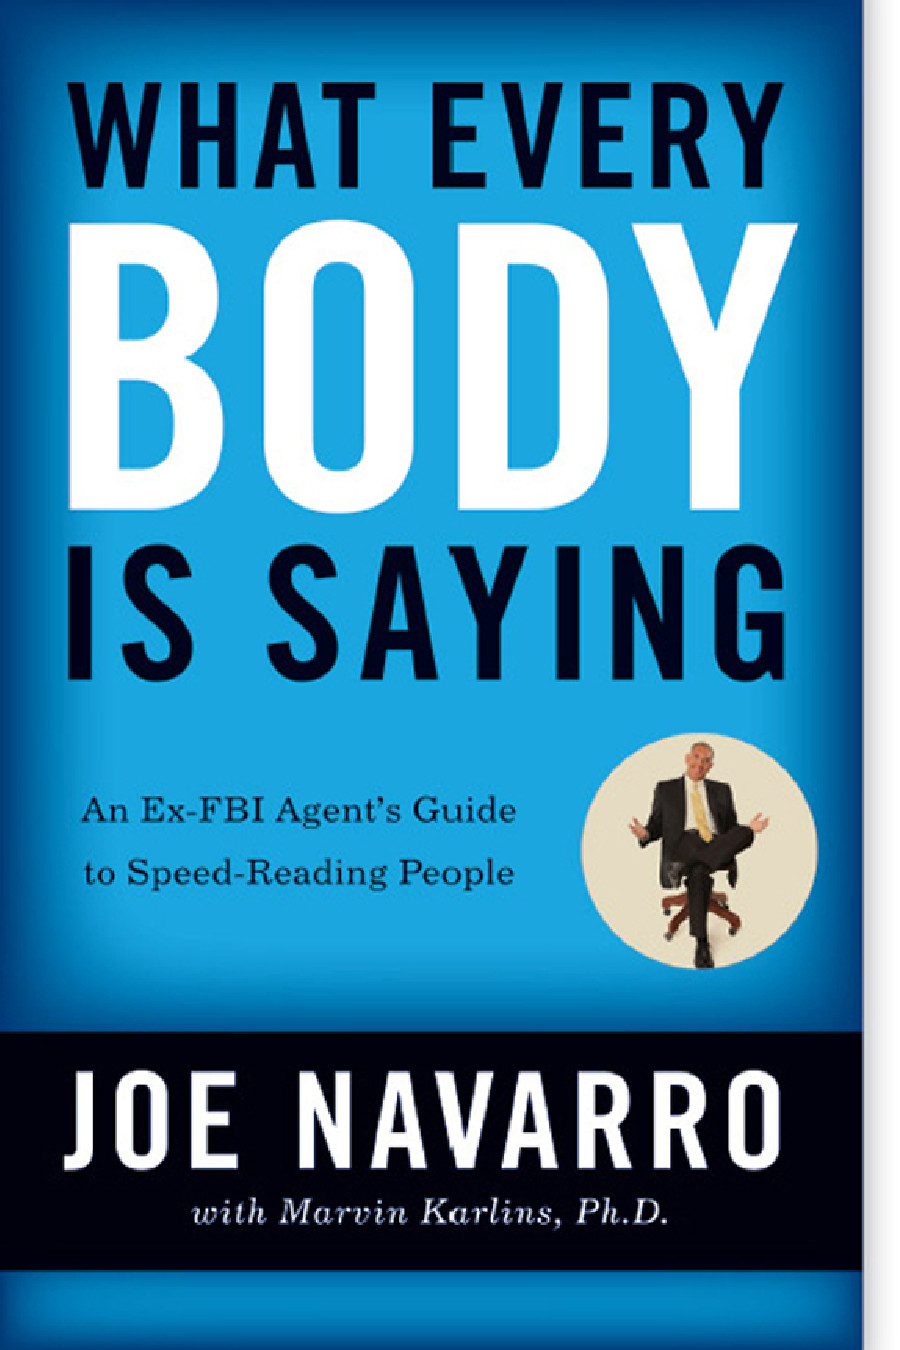 Book Review: What Every BODY is Saying by Joe Navarro